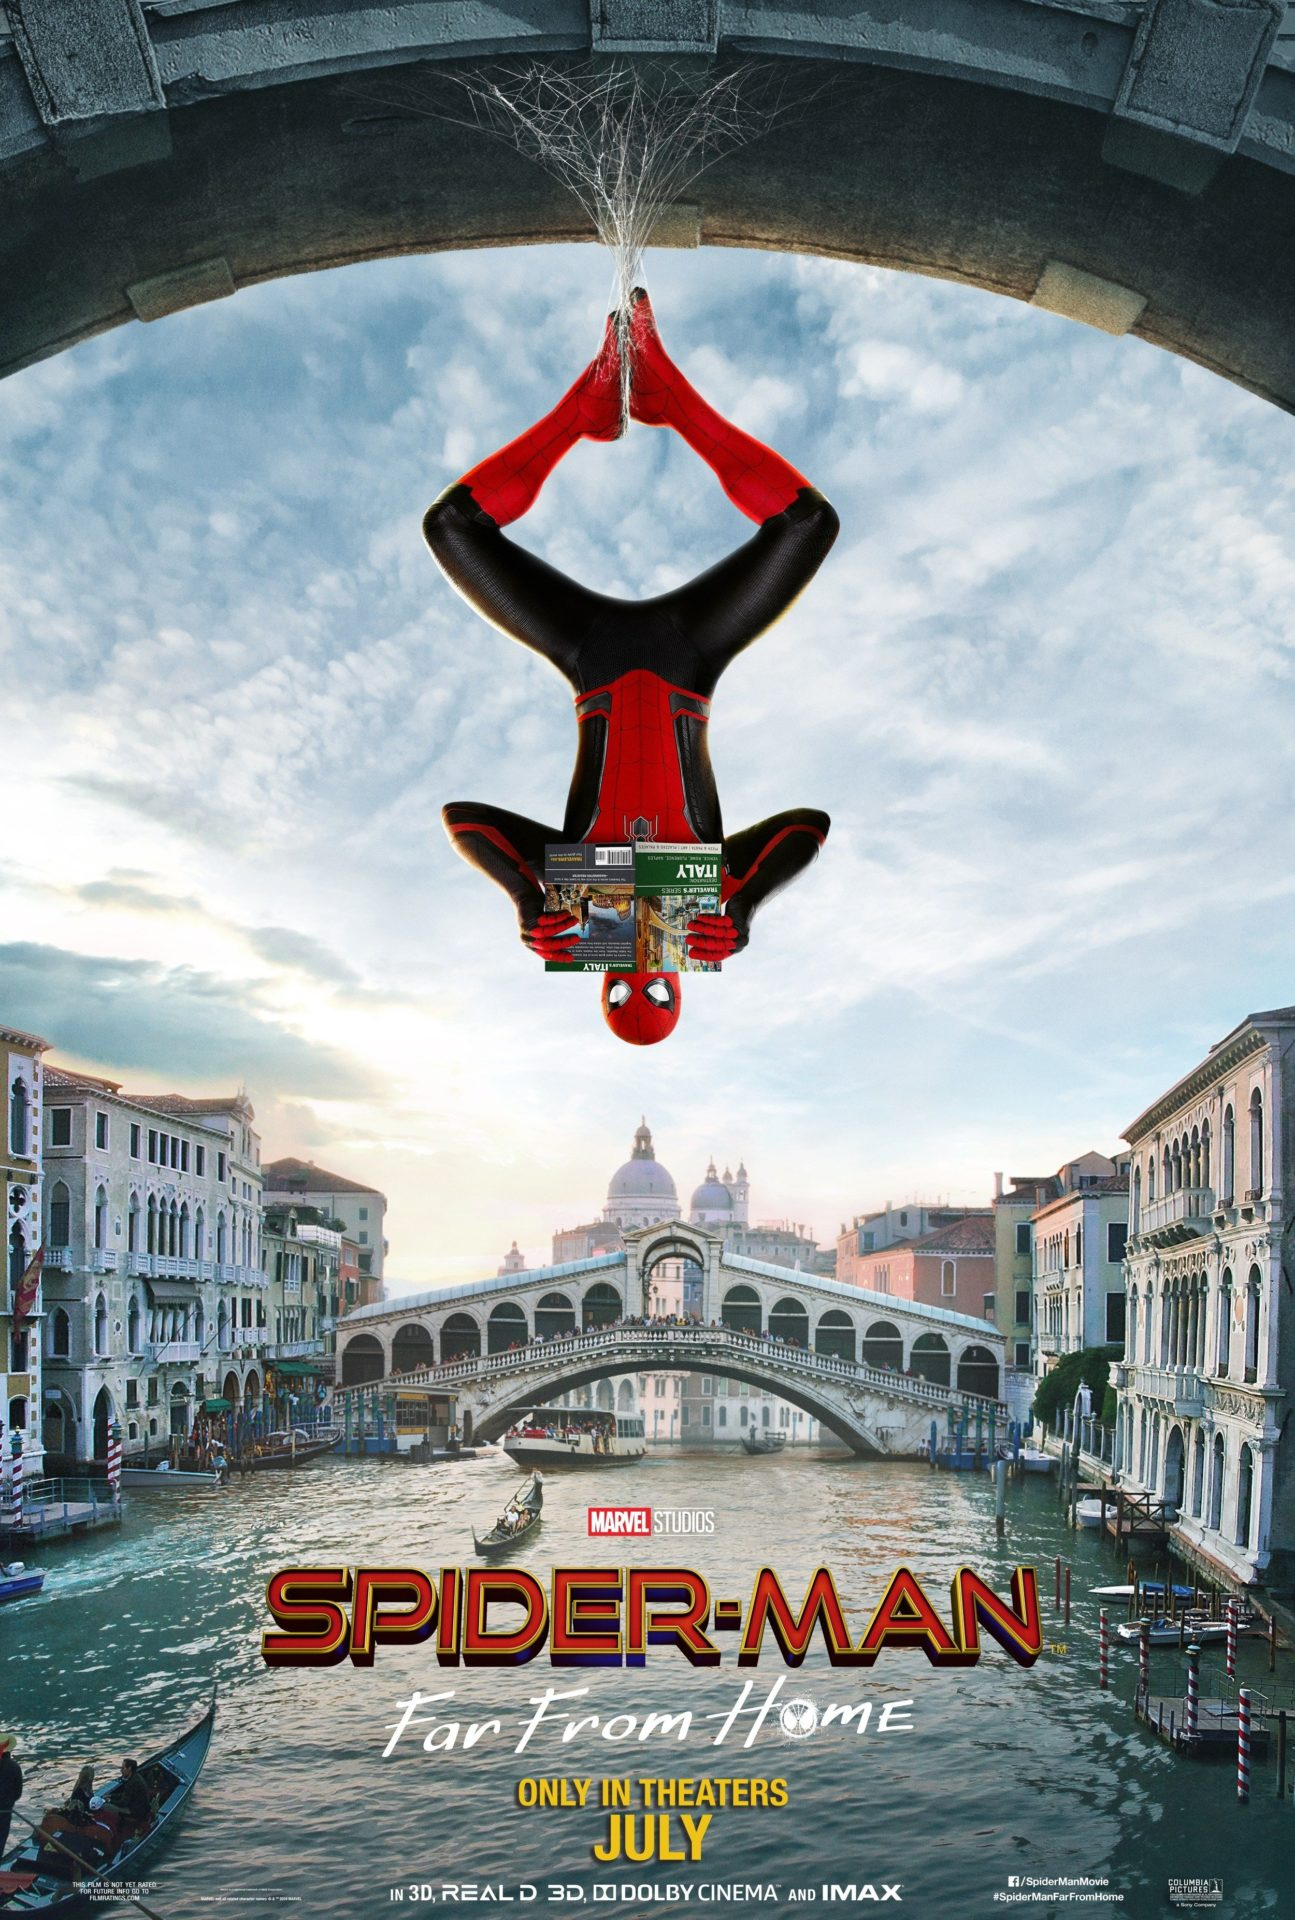 Spider-Man Far From Home Tom Holland Poster